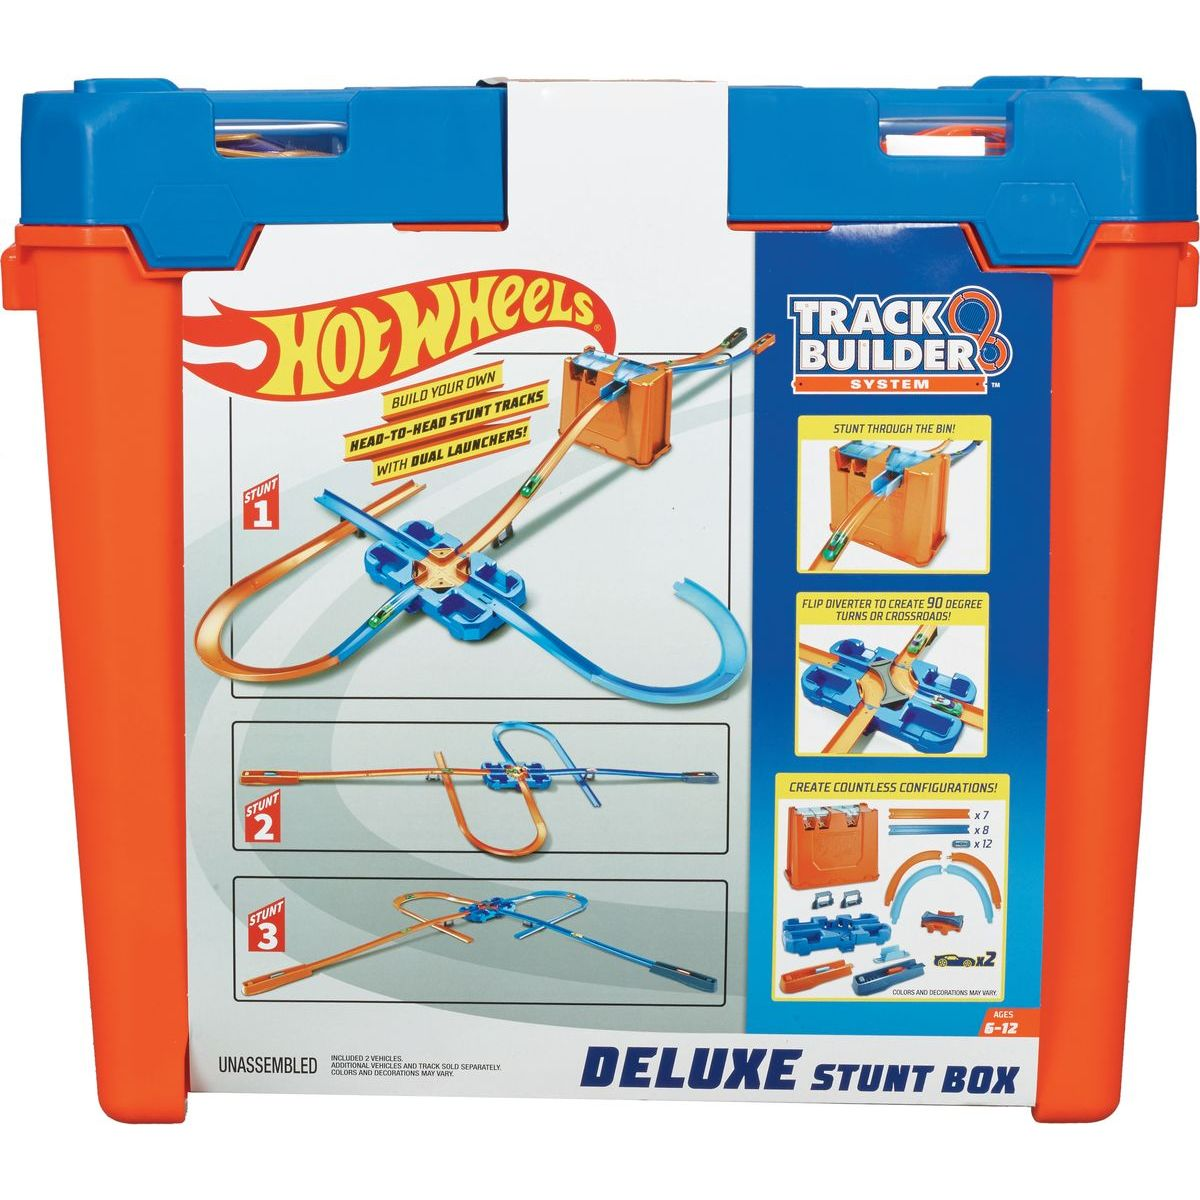 Mattel Hot Wheels track builder box plný triků